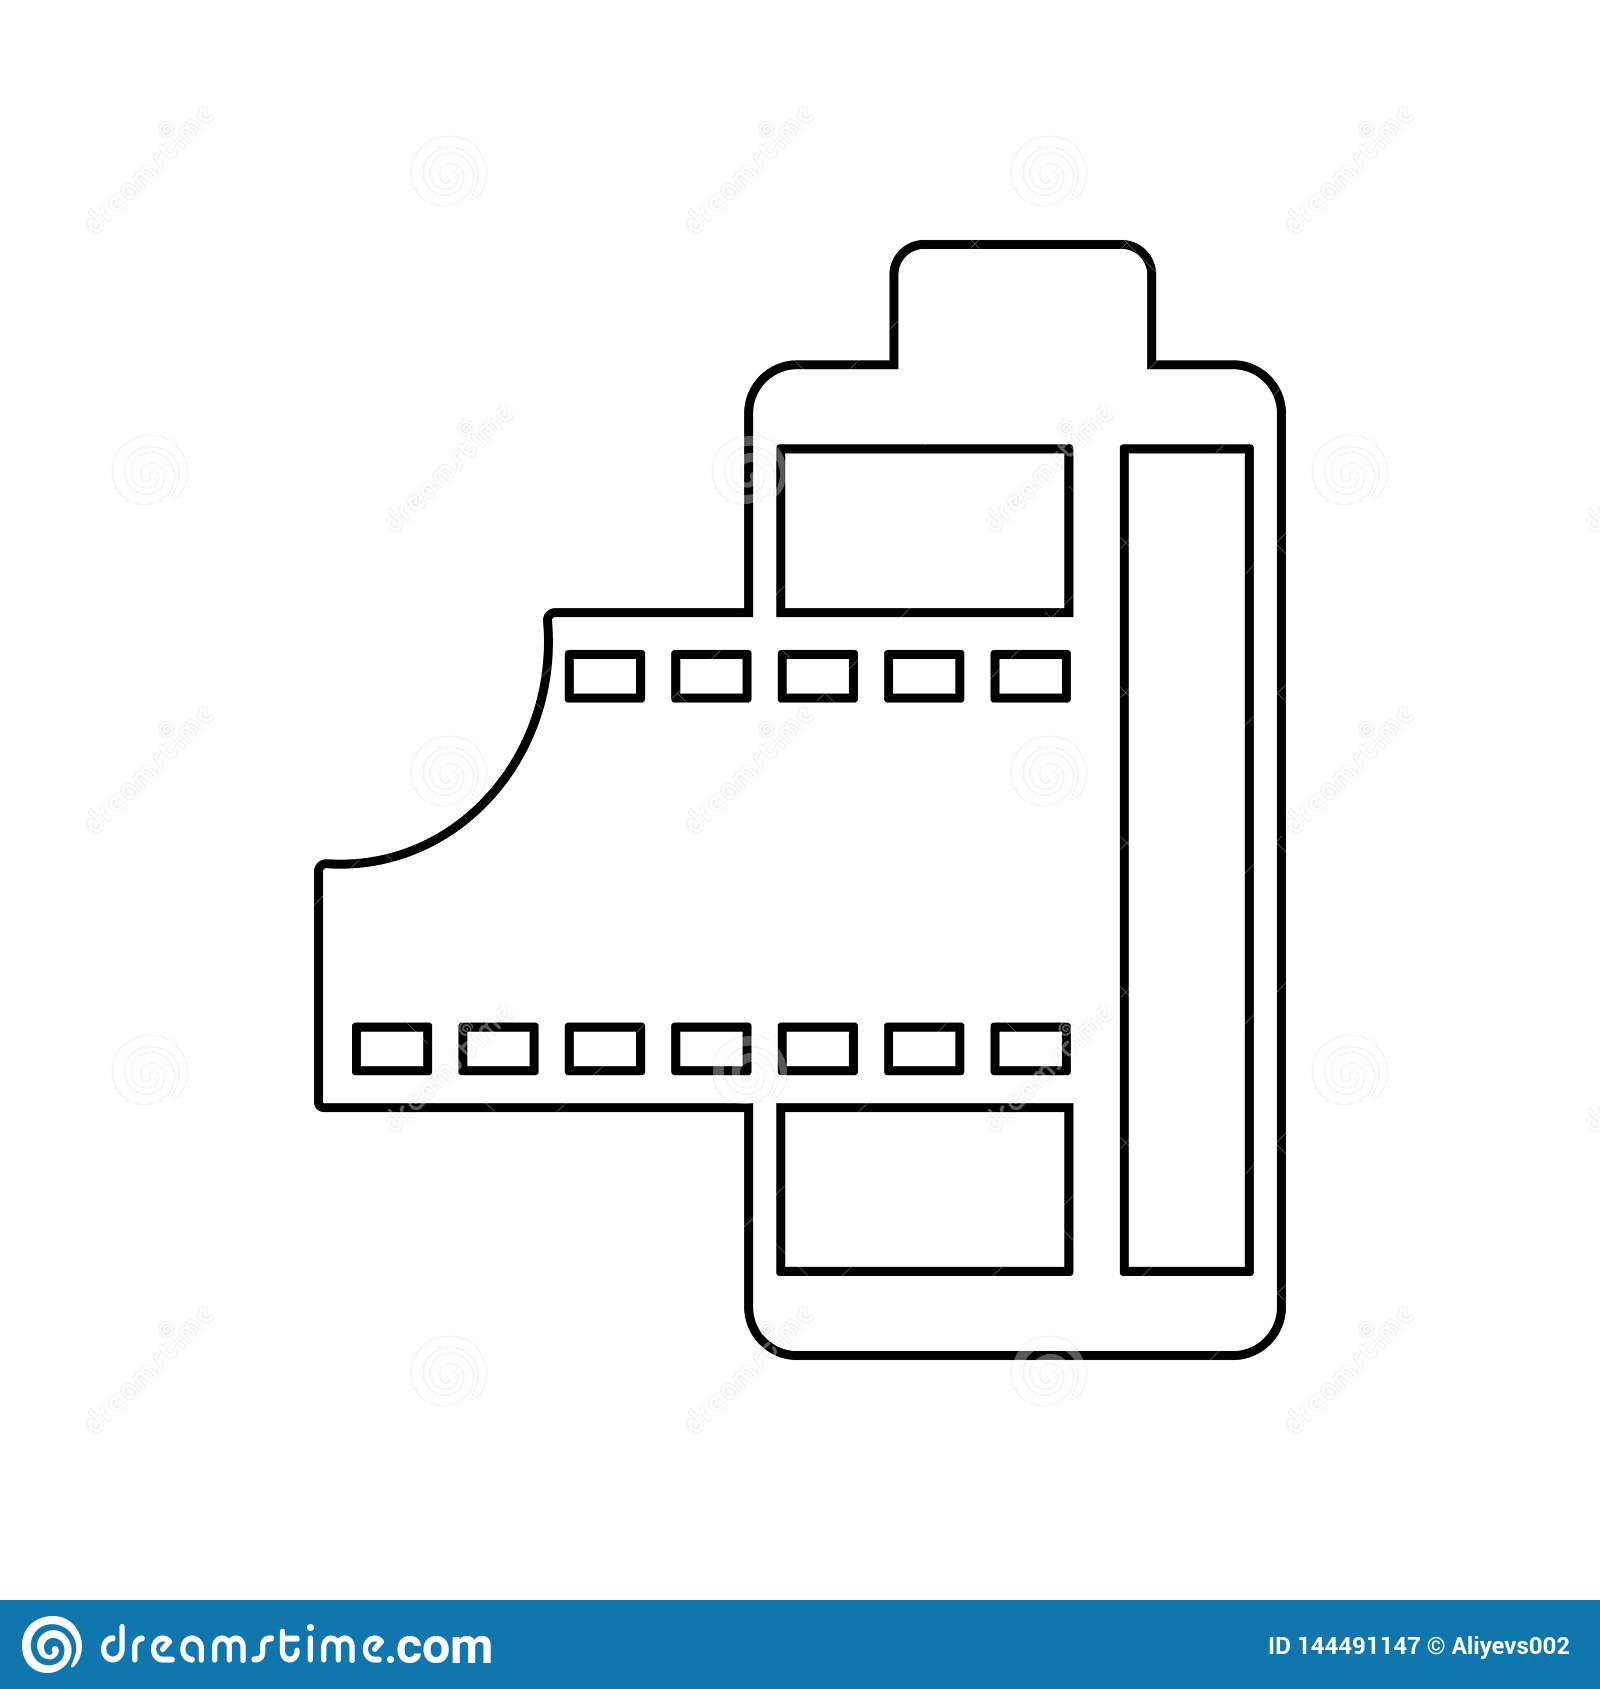 film icon. Element of Equipment photography for mobile concept and web apps icon. Outline, thin line icon for website design and